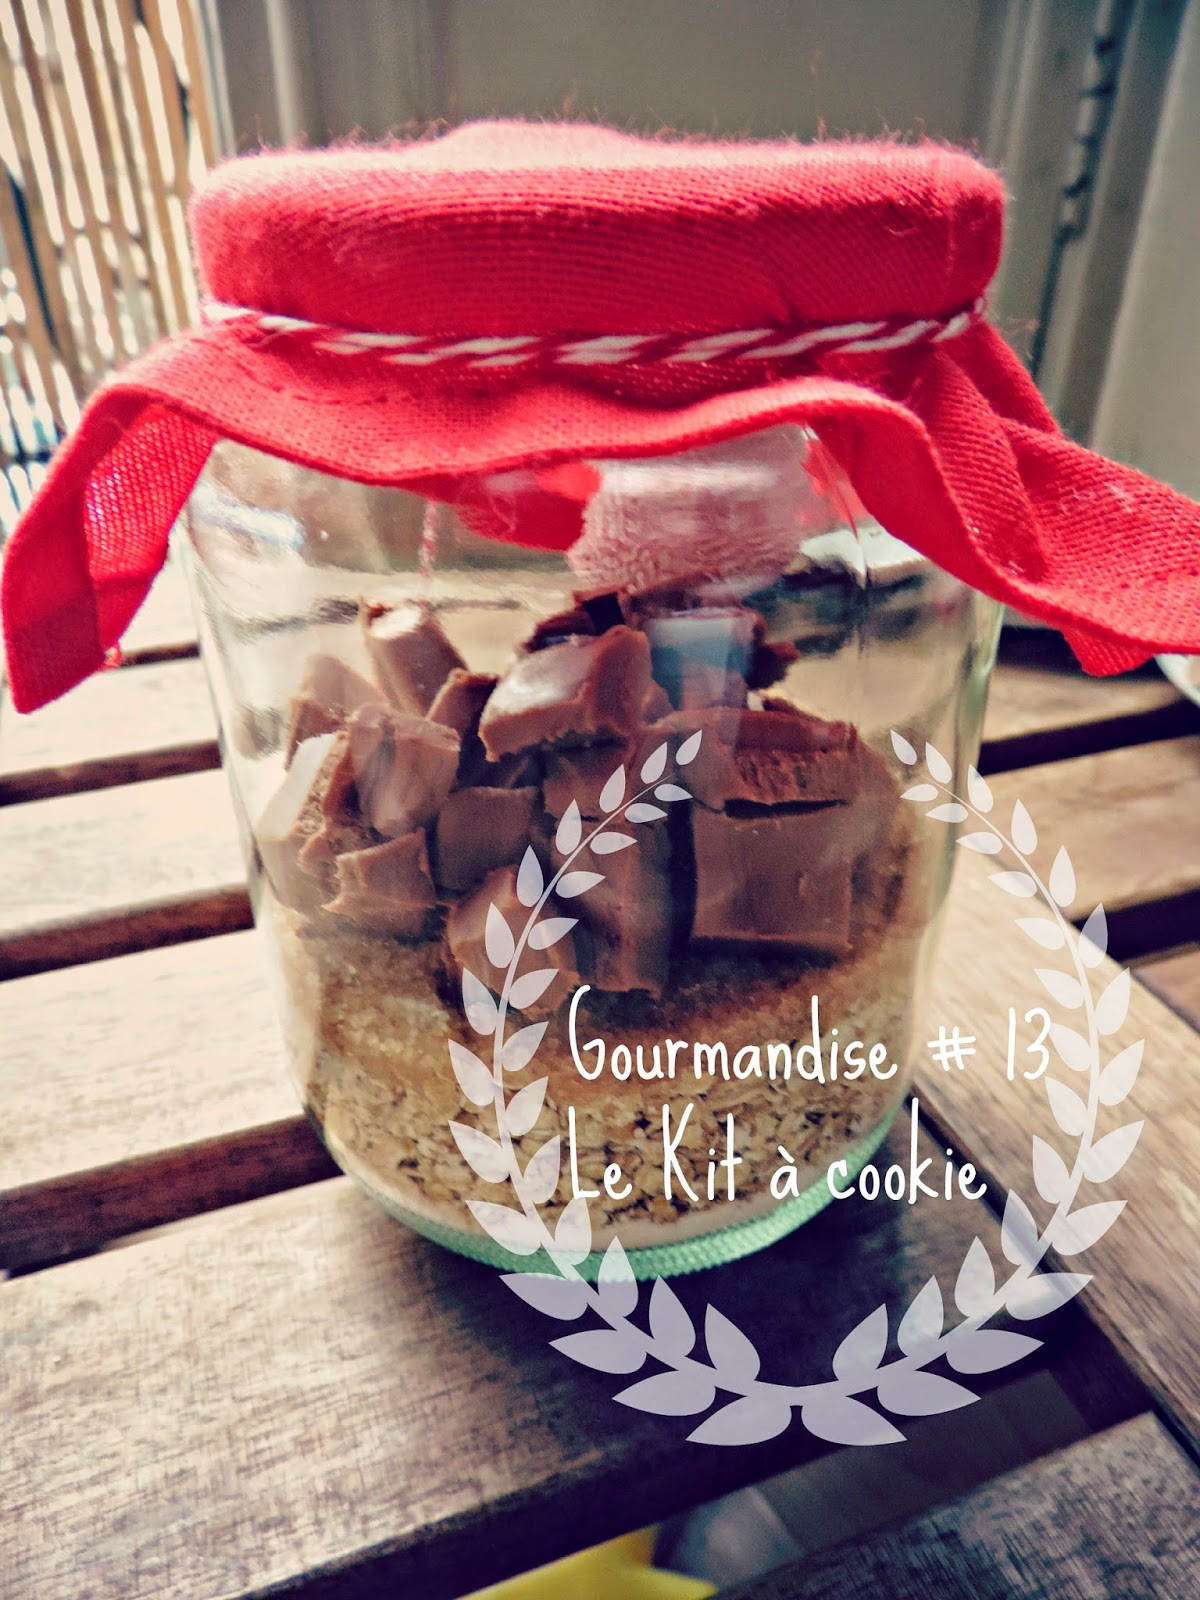 http://mynameisgeorges.blogspot.com/2014/06/gourmandise-13-le-kit-cookie.html